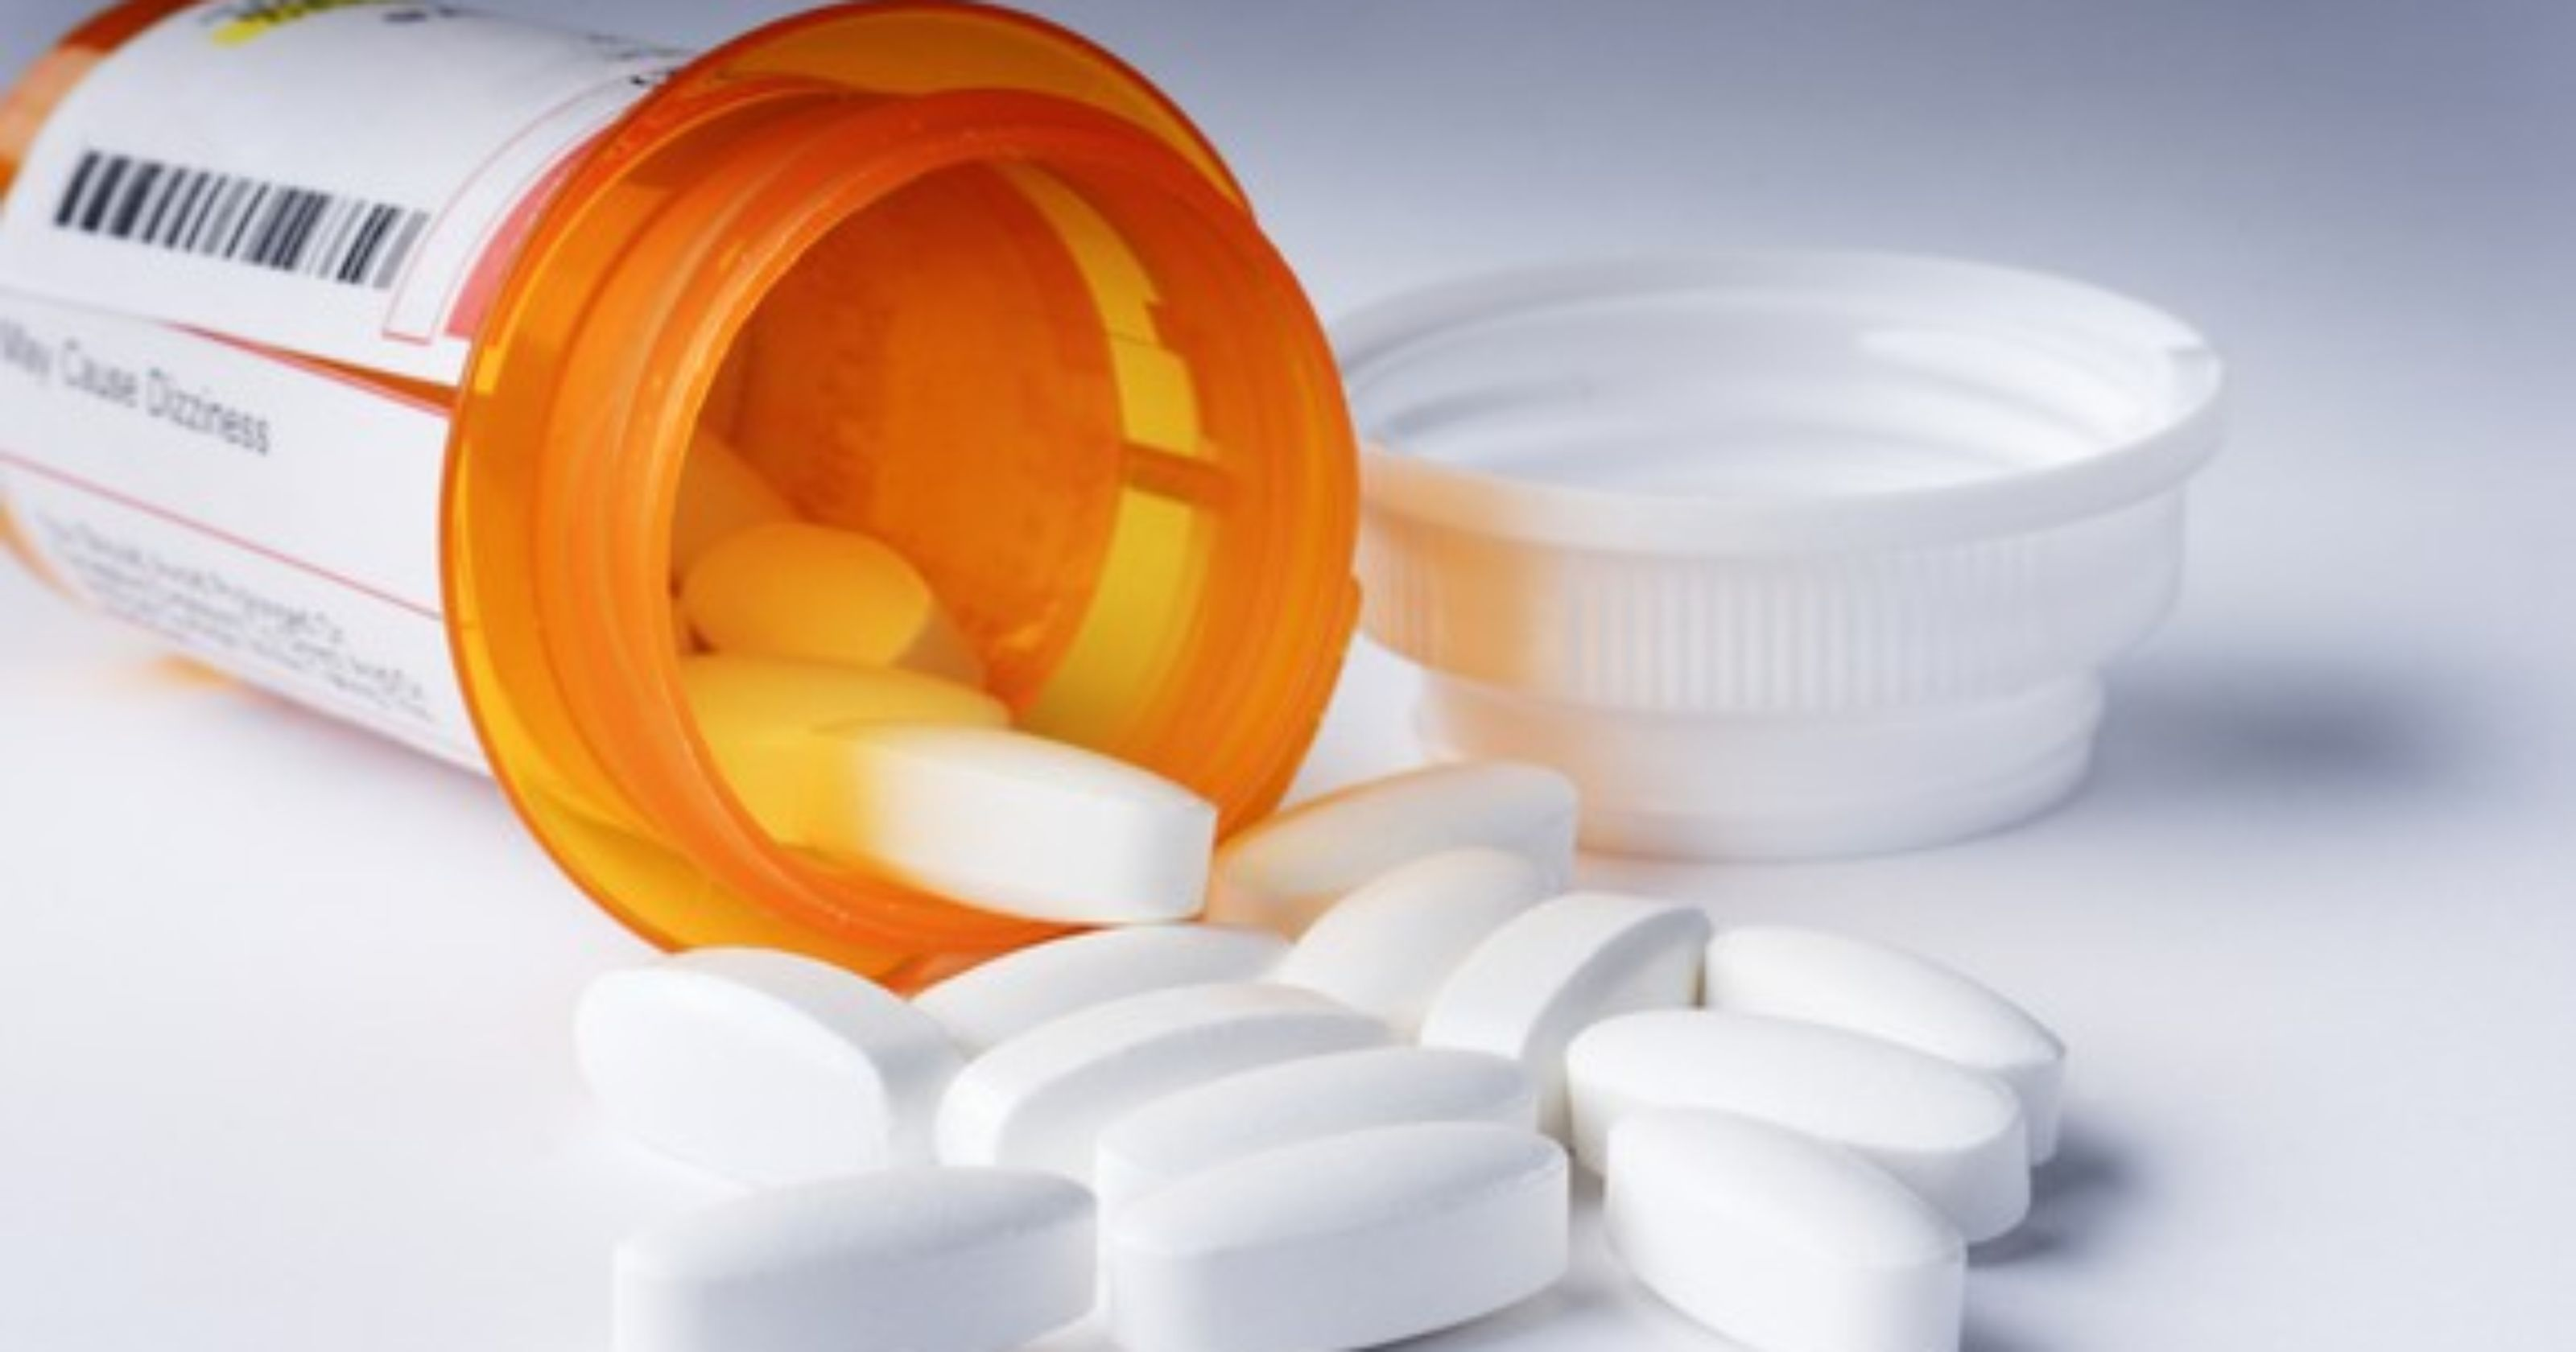 National Prescription Drug Take-Back Day - Let's Help Stop the Opioid Drug Problem